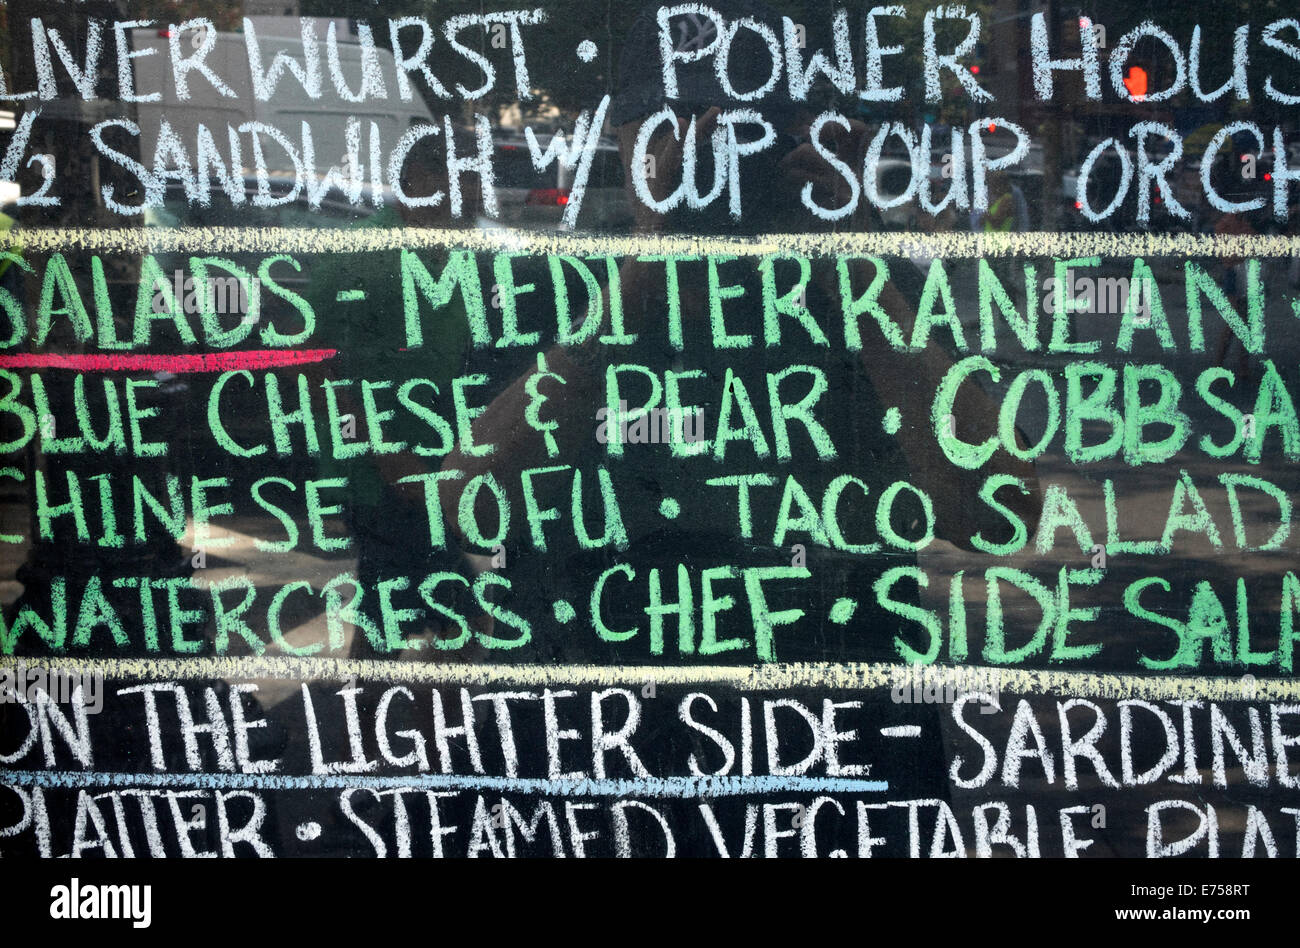 Chalk written menu at a bar in Soho in New York City - Stock Image